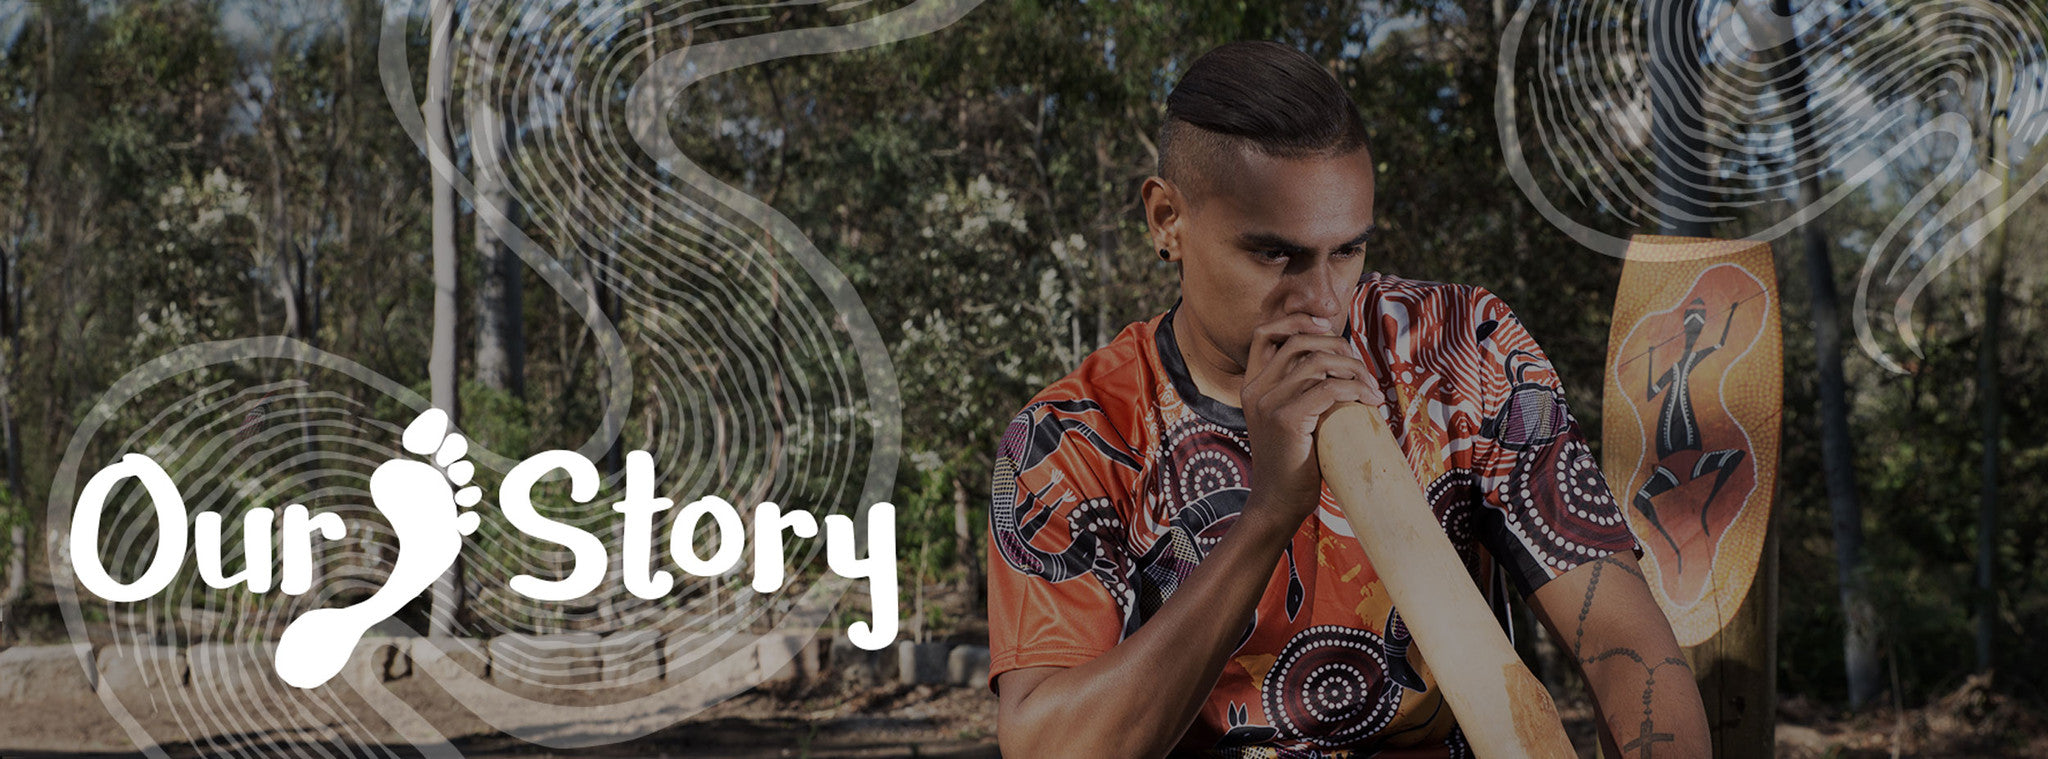 indigenous_aboriginal_shirt_our_story